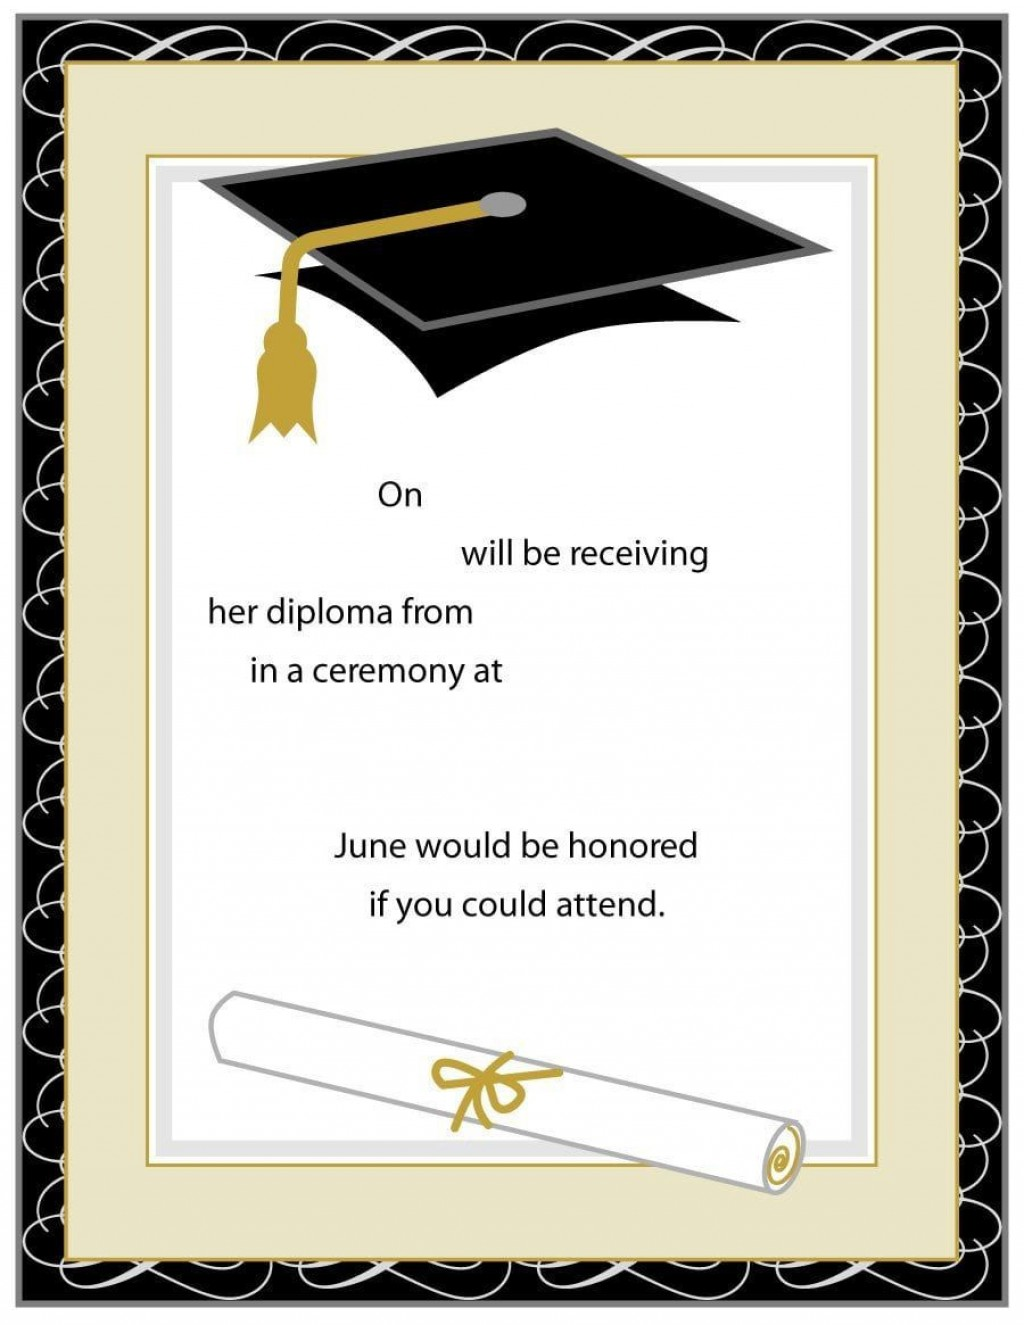 004 Breathtaking Free Printable Graduation Invitation Template High Resolution  Party For WordLarge